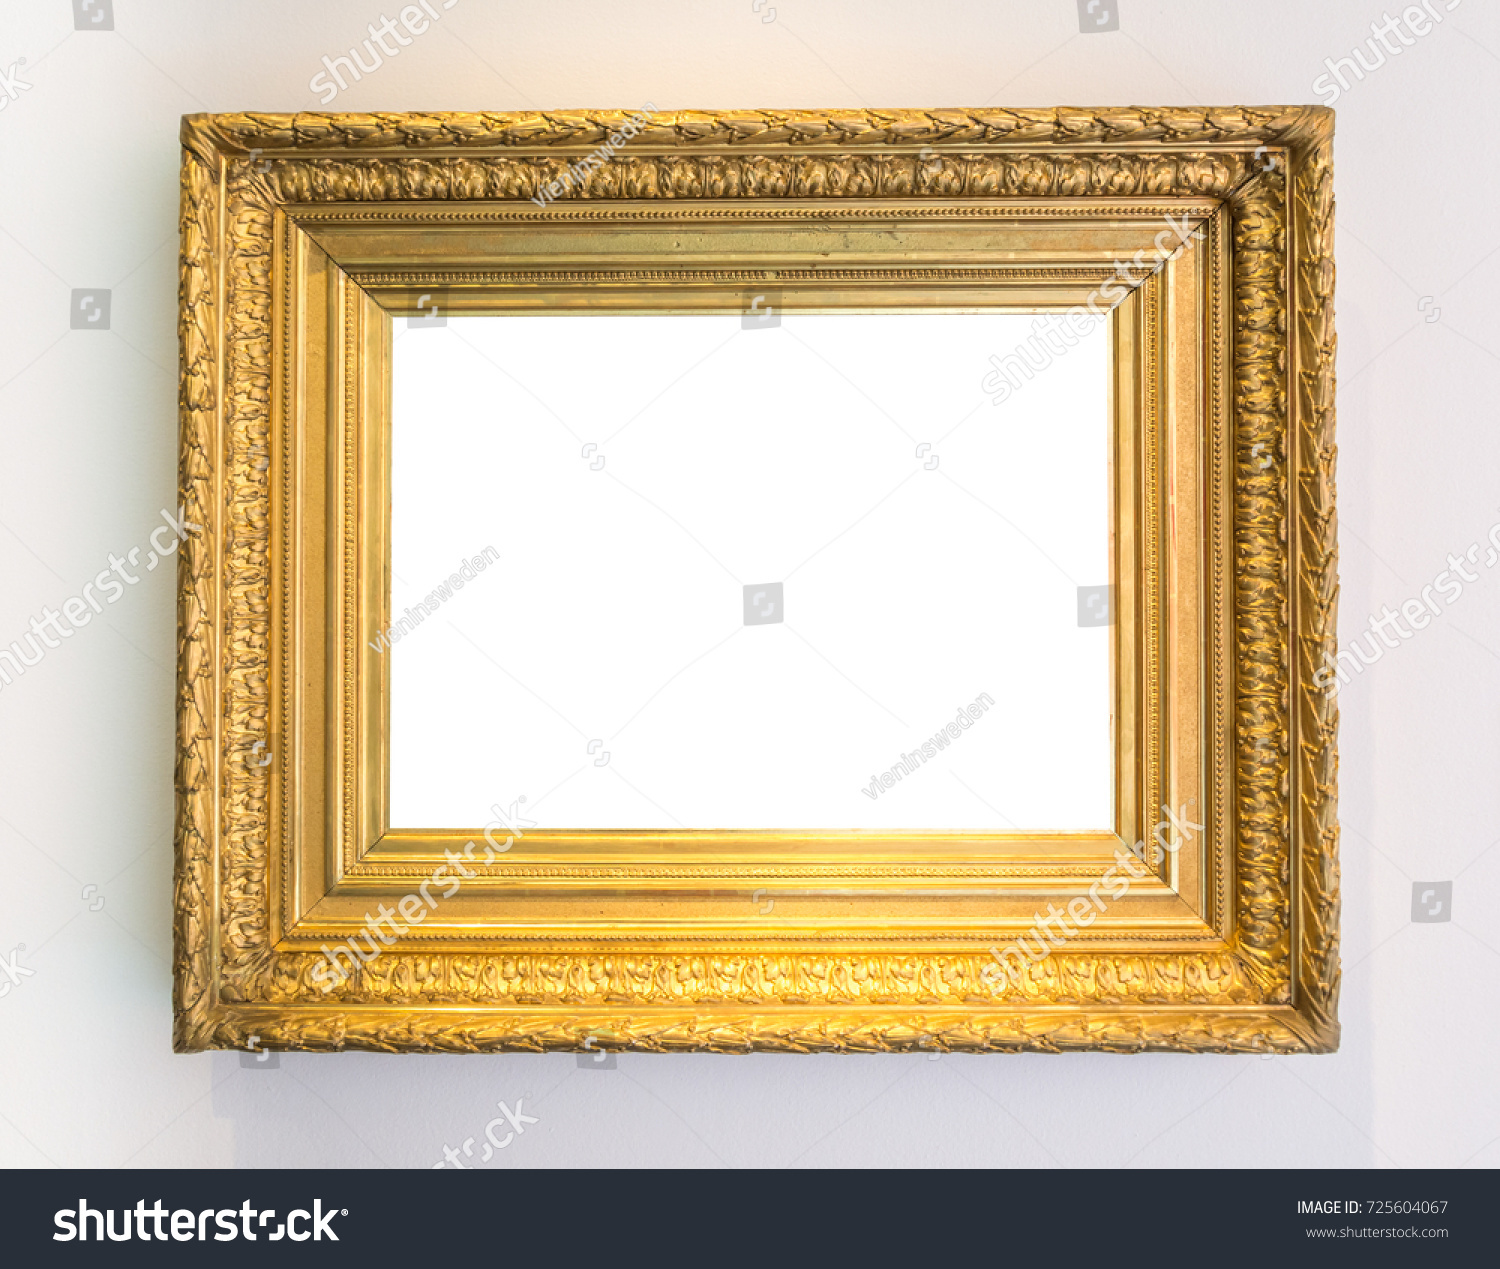 Gold Vintage Picture Frame Art Gallery Stock Photo (Edit Now ...